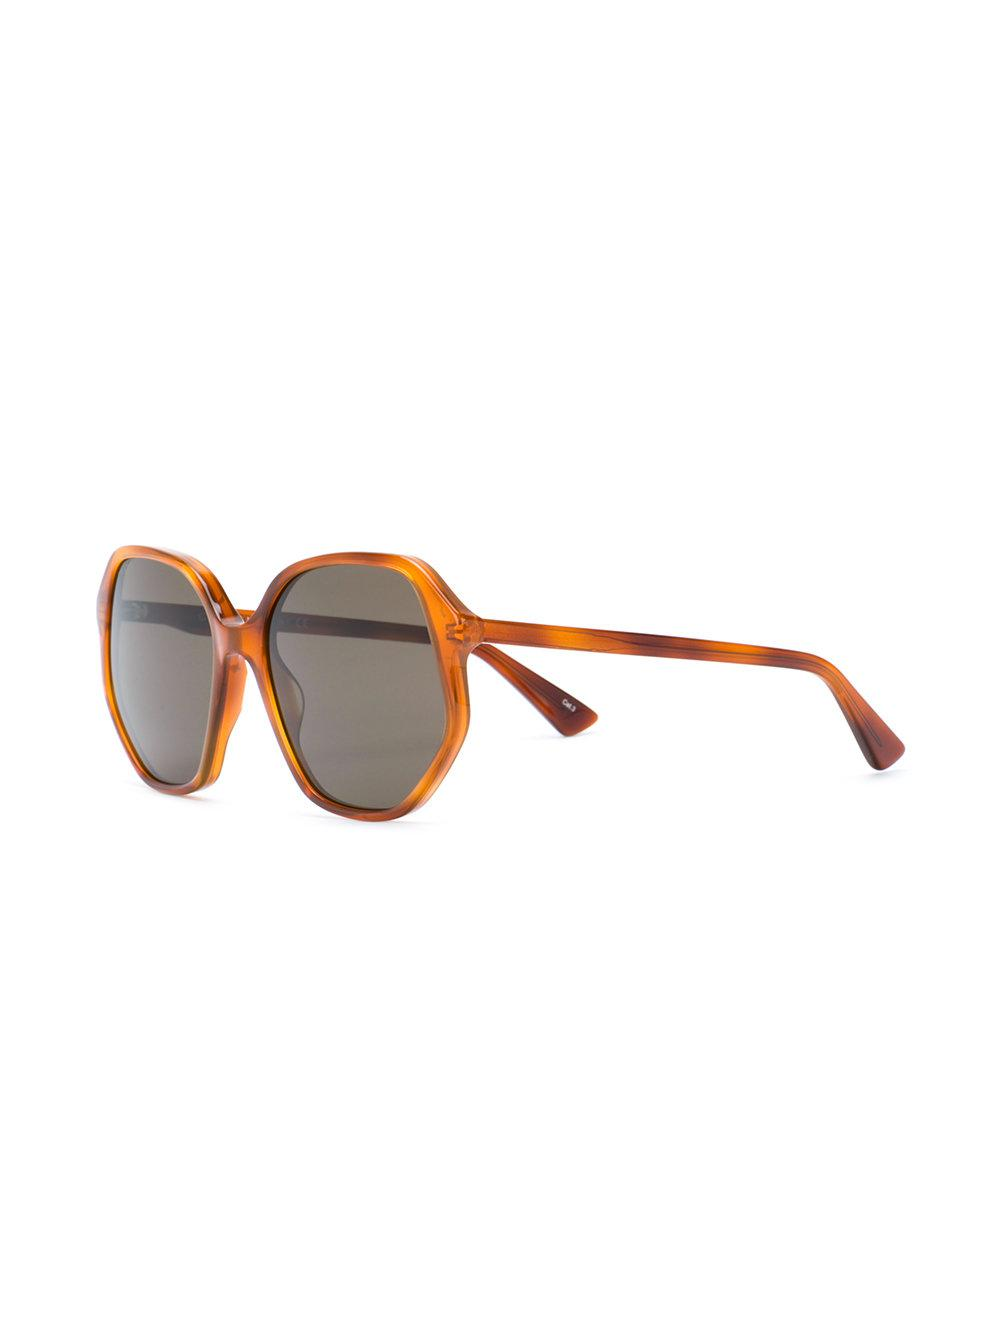 5912415c6fe Gucci Oversized Sunglasses in Brown - Lyst